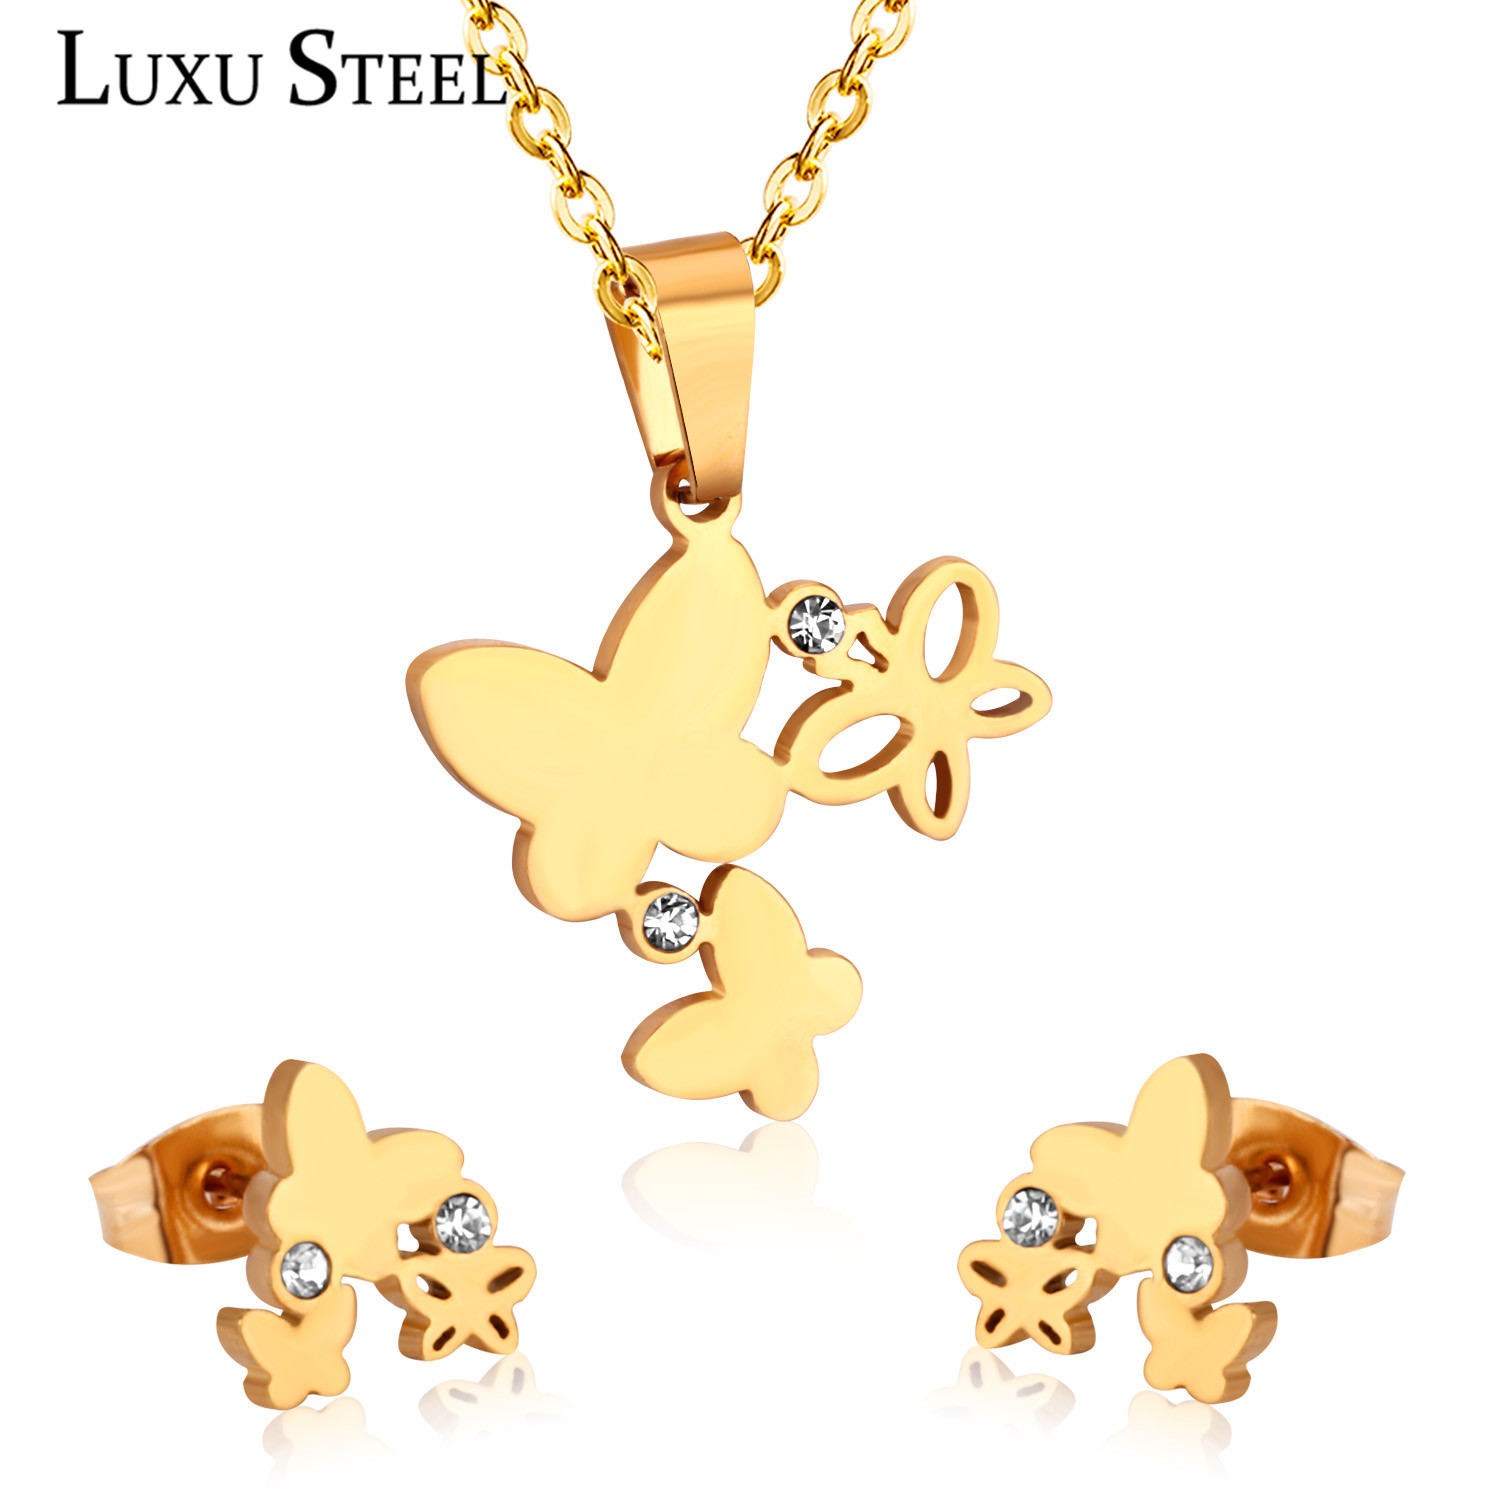 LUXUSTEEL Cute <font><b>Jewelry</b></font> <font><b>Sets</b></font> <font><b>Stainless</b></font> <font><b>Steel</b></font> Butterfly Pendant Necklace Earring <font><b>Sets</b></font> With Cubic Zirconia <font><b>For</b></font> <font><b>Women</b></font>/Girl Bijoux image